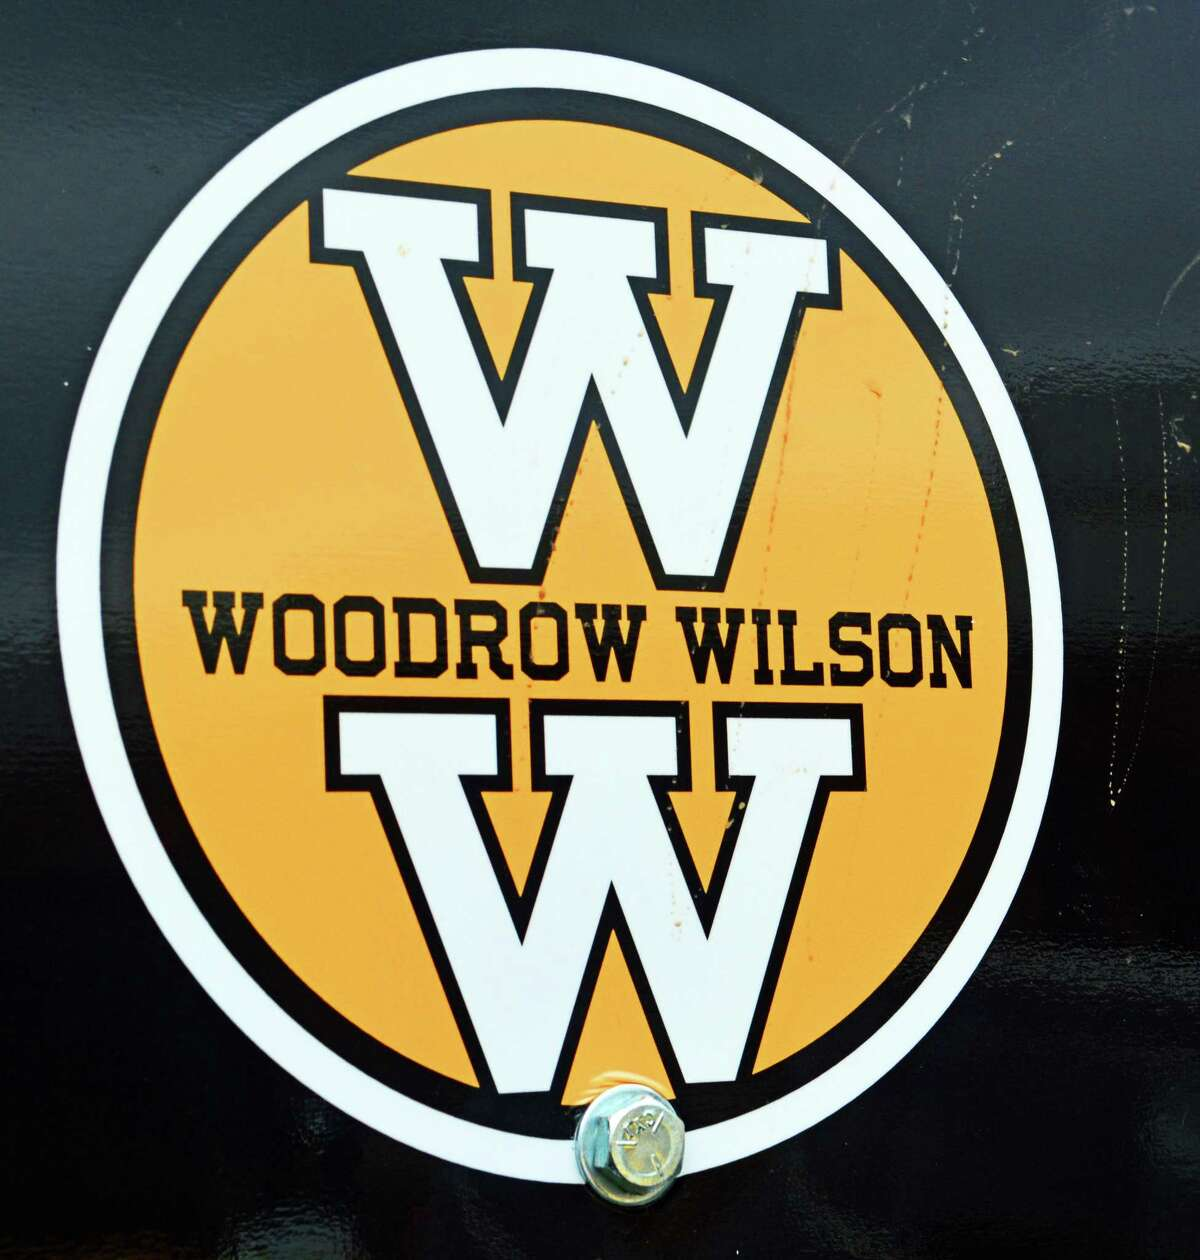 Woodrow Wilson Middle School's colors are black and gold.